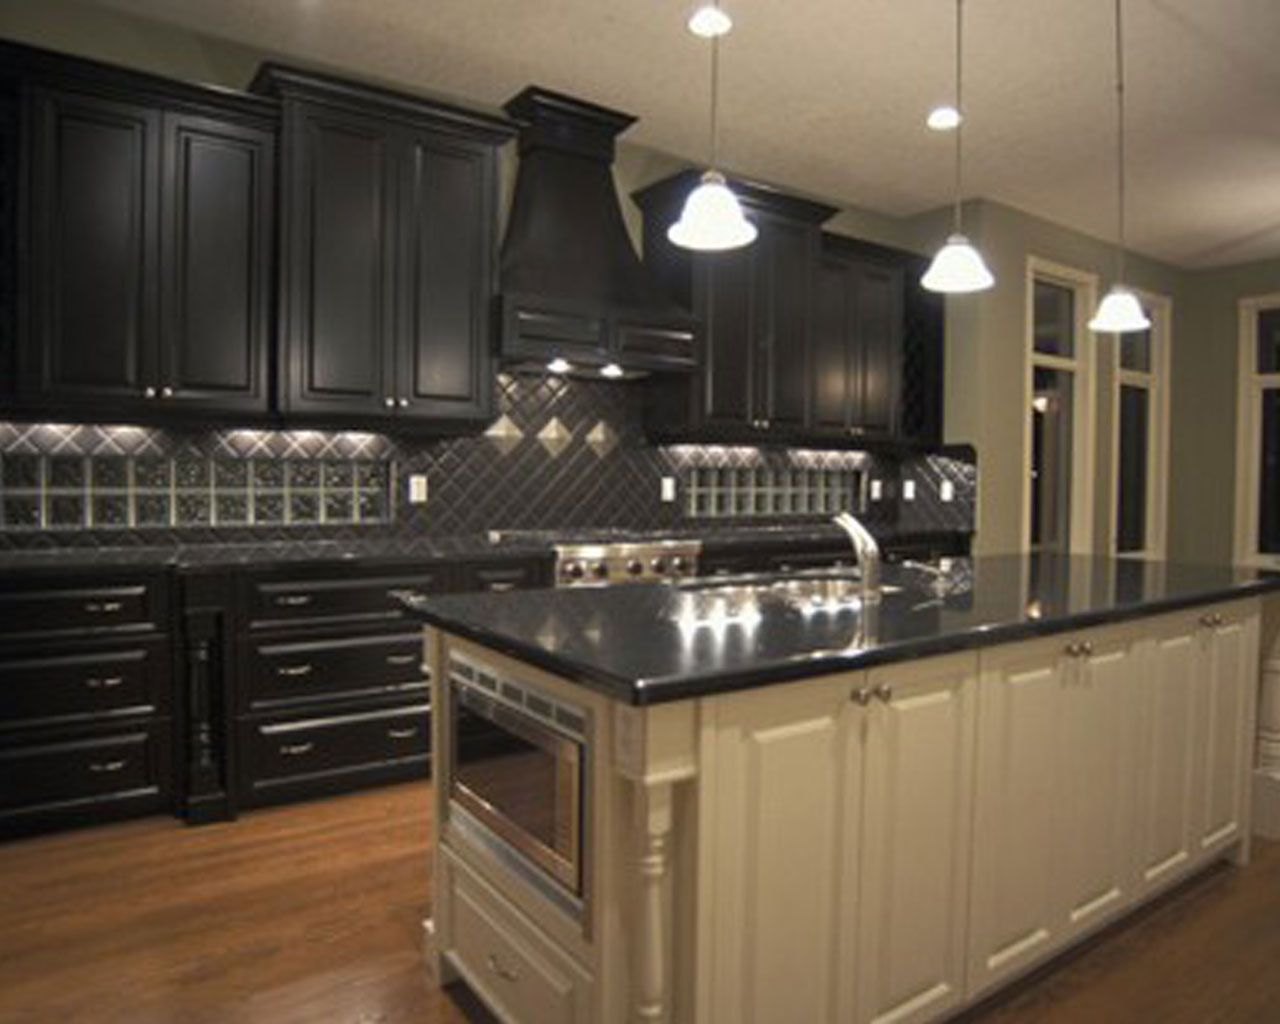 Finest design black kitchen cabinets wallpapers new for Dark brown painted kitchen cabinets